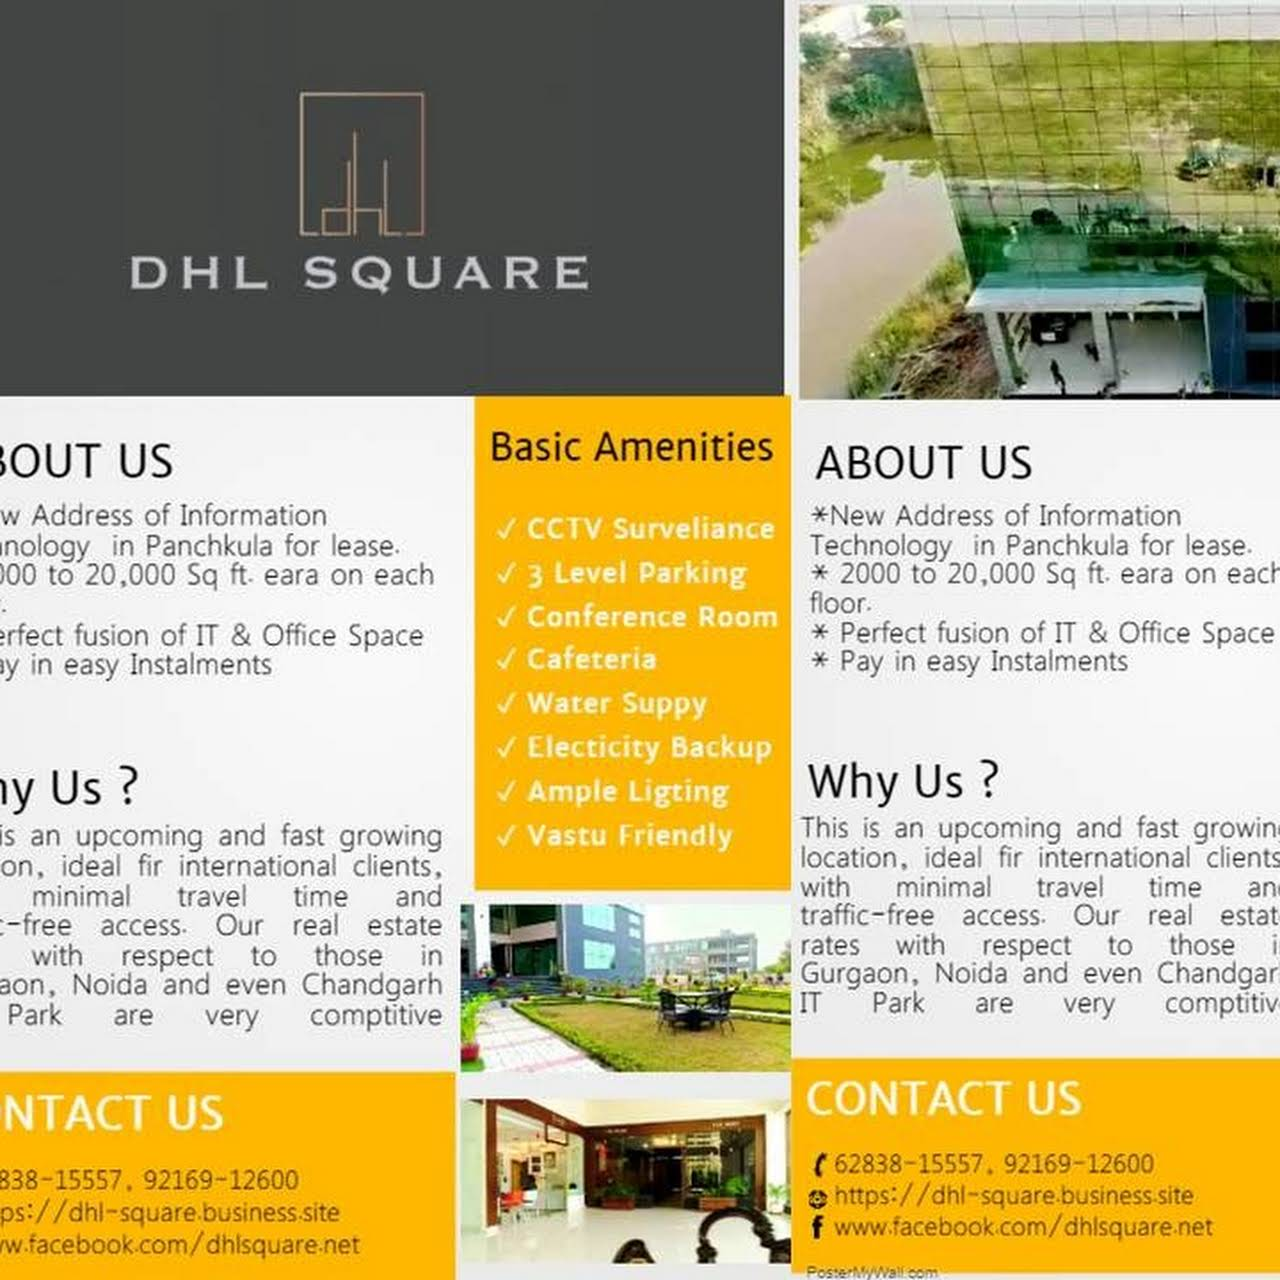 DHL Square - Office Space for Lease in Panchkula